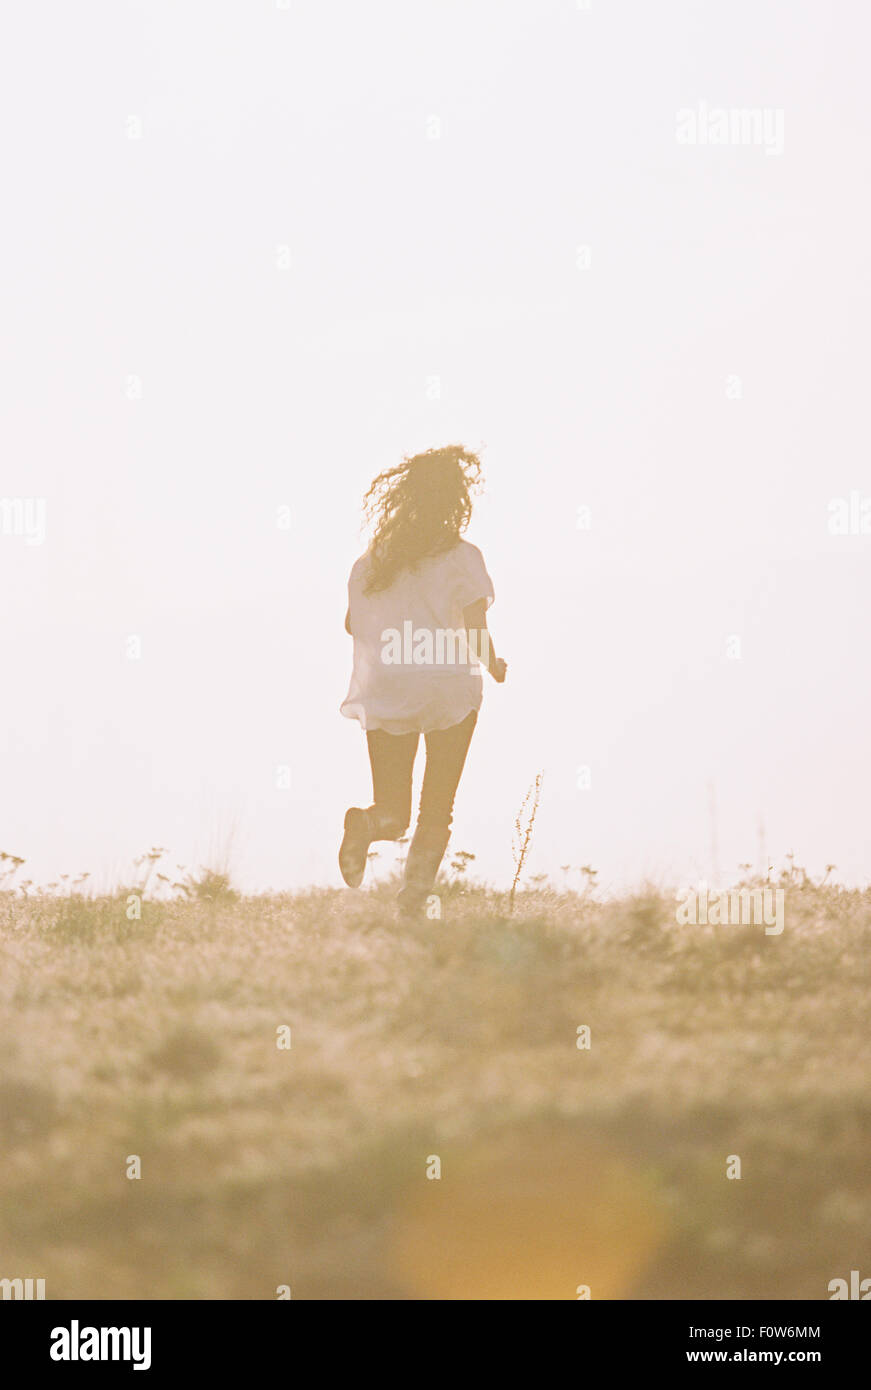 A woman running with her long hair fanning out behind her. - Stock Image